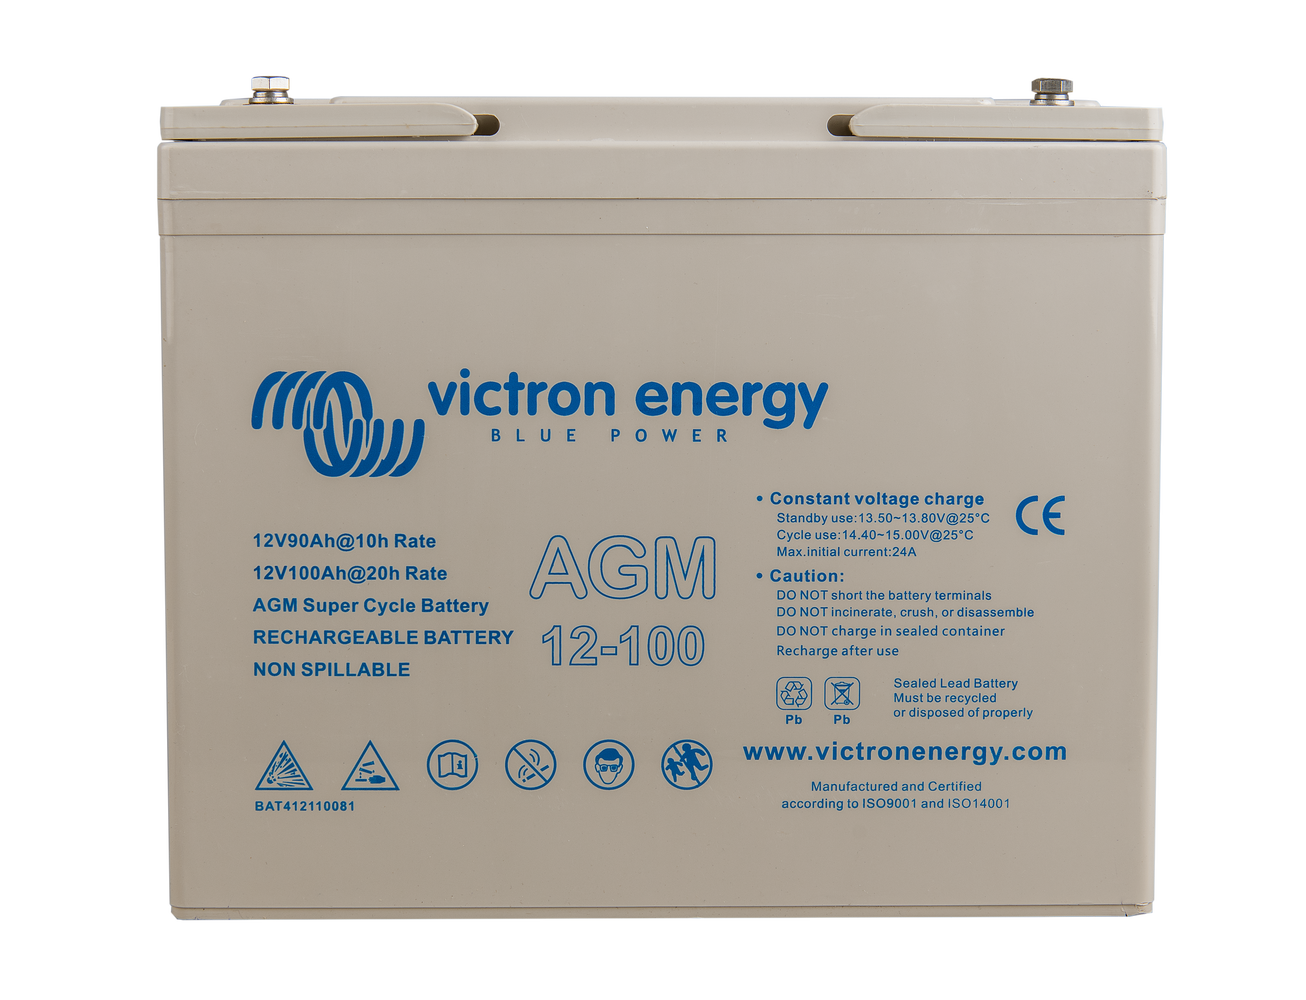 12v 100ah agm super cycle battery (front)